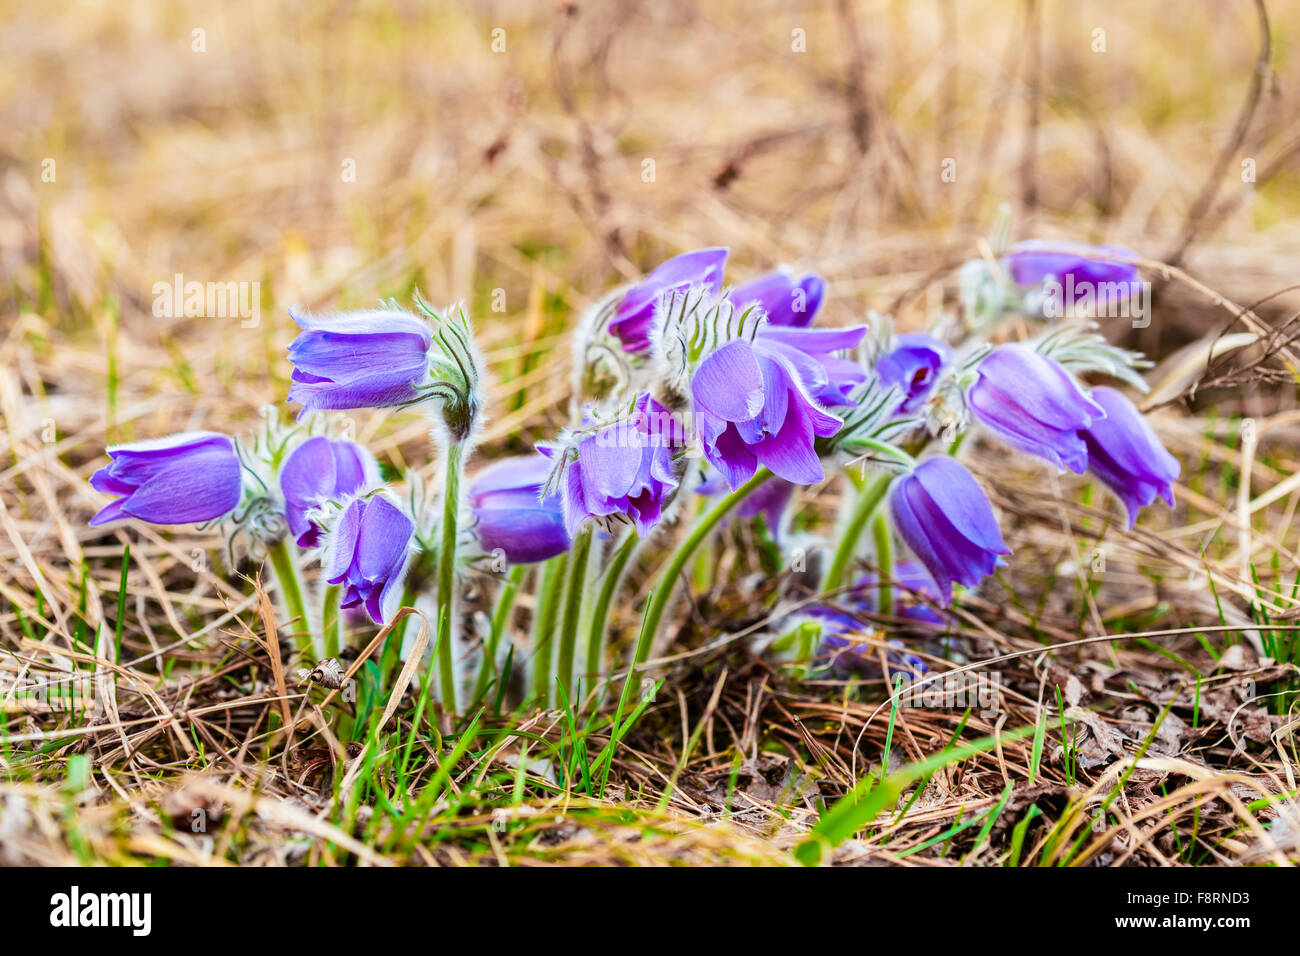 Wild spring flowers pulsatilla patens flowering plant in family wild spring flowers pulsatilla patens flowering plant in family ranunculaceae native to europe russia mongolia china canad dhlflorist Gallery